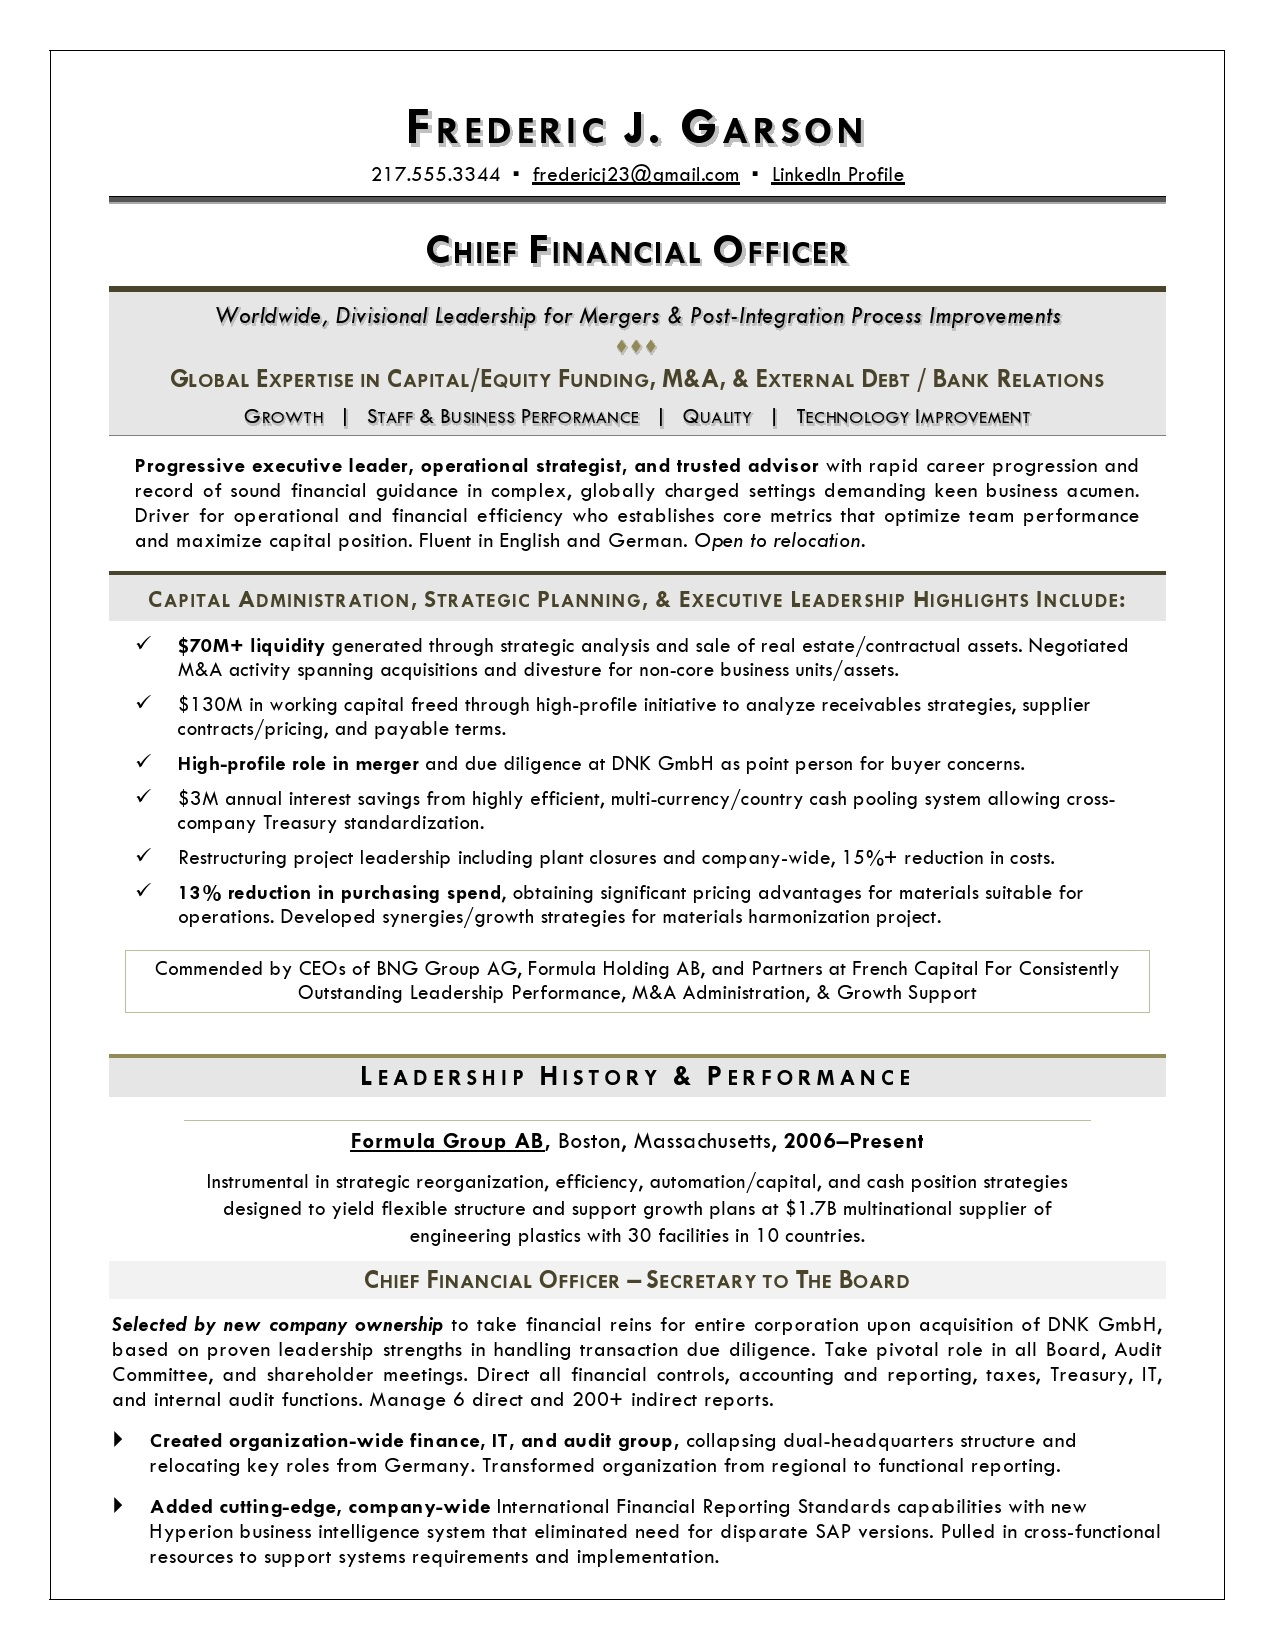 Resume Writer For Cfos Executive Resume Service For